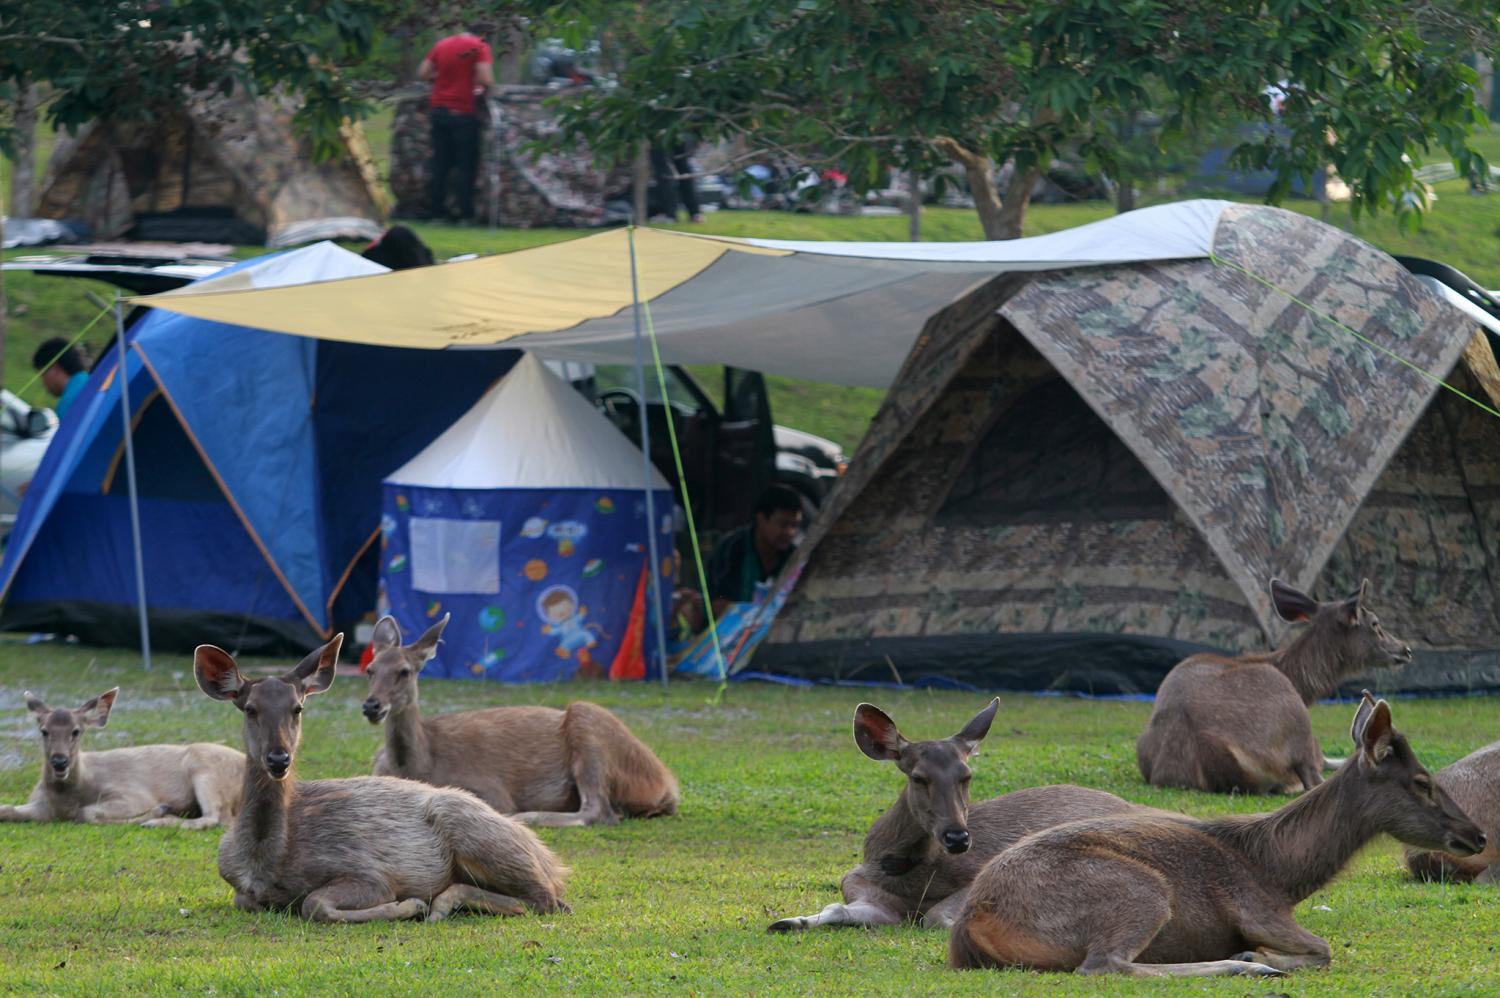 all in the family: Wild deer rest near tents put up in Khao Yai National Park in Nakhon Ratchasima. The animals do not appear to be bothered by their close proximity to humans. Many deer are lured by food handed out by park visitors and also feed on garbage the visitors have left behind.